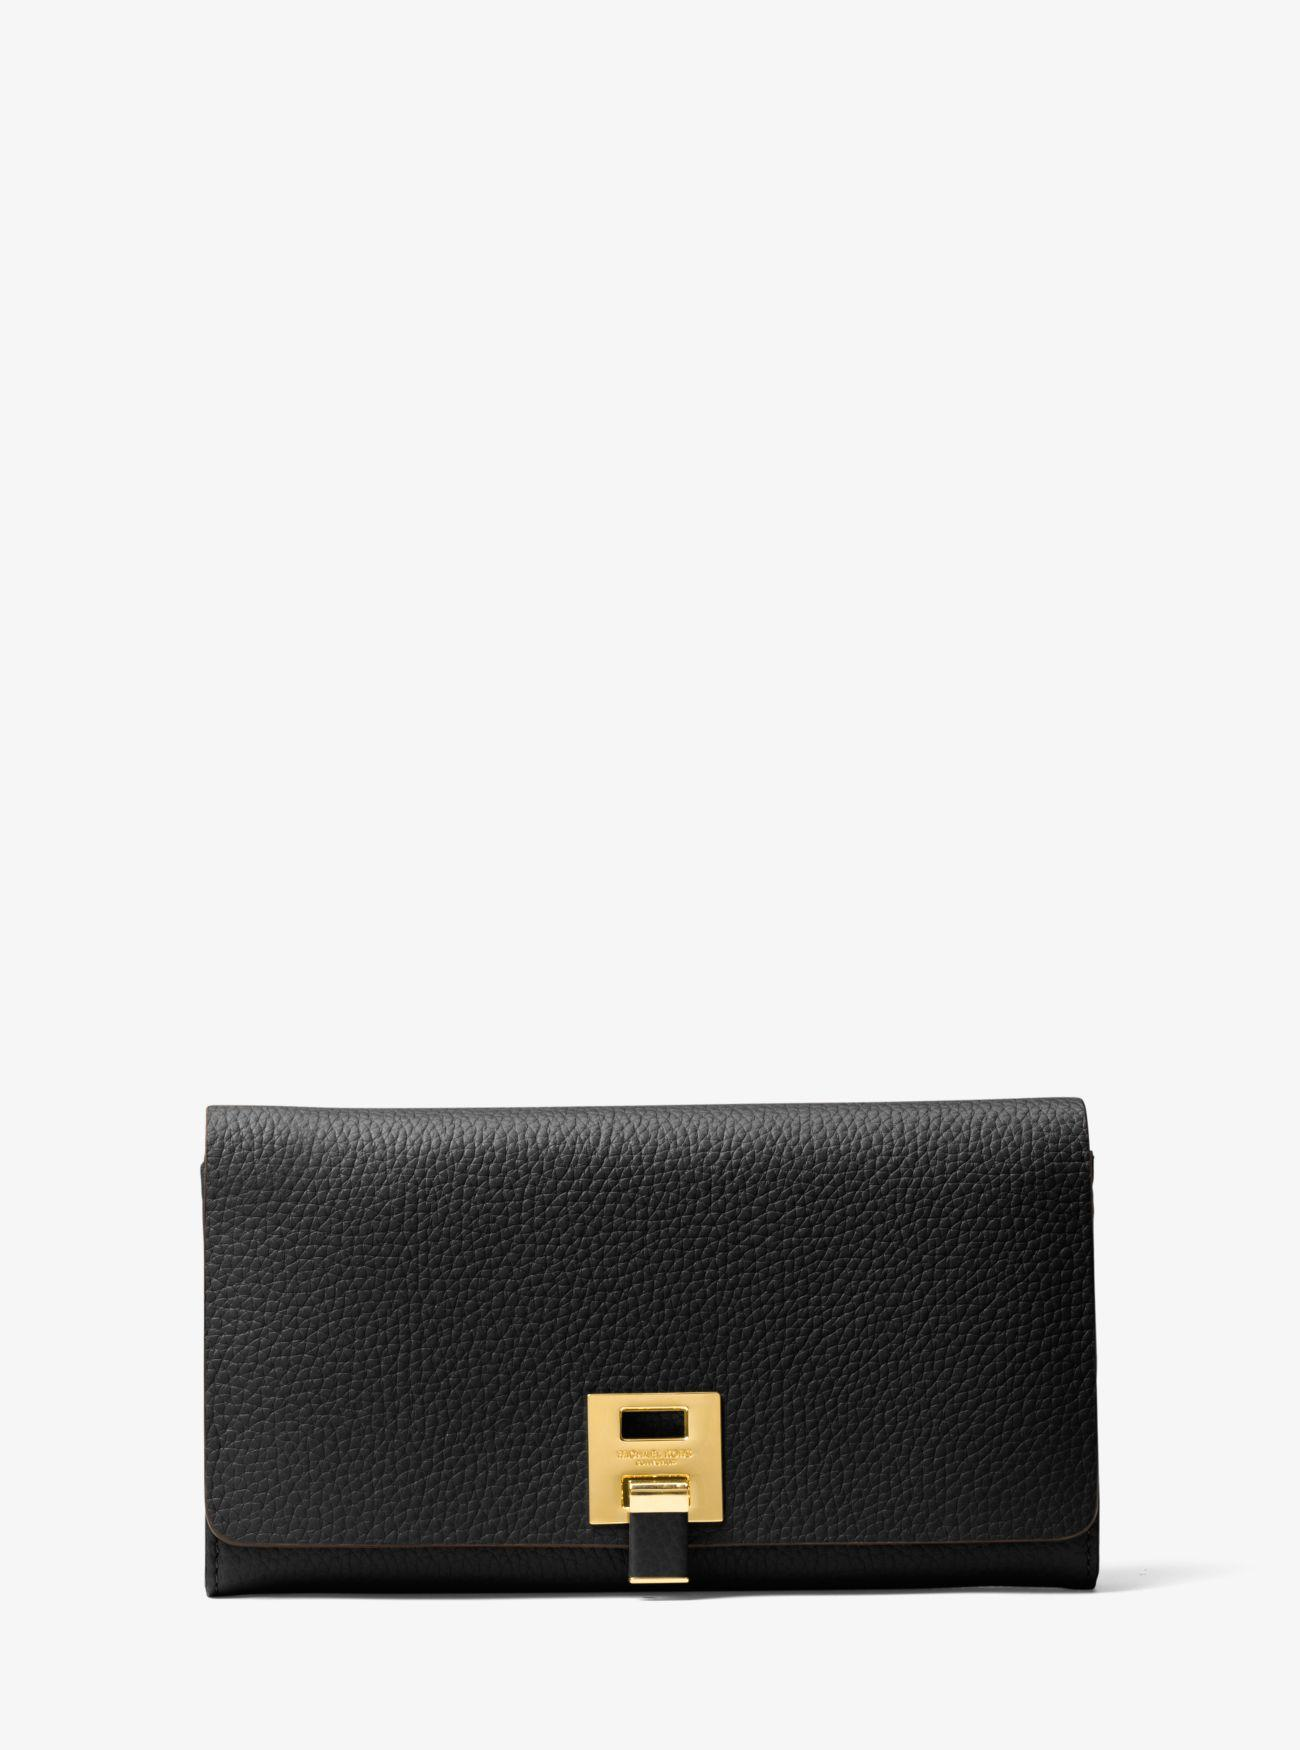 a589643f38e7 Michael Kors Bancroft Pebbled Calf Leather Continental Wallet in ...